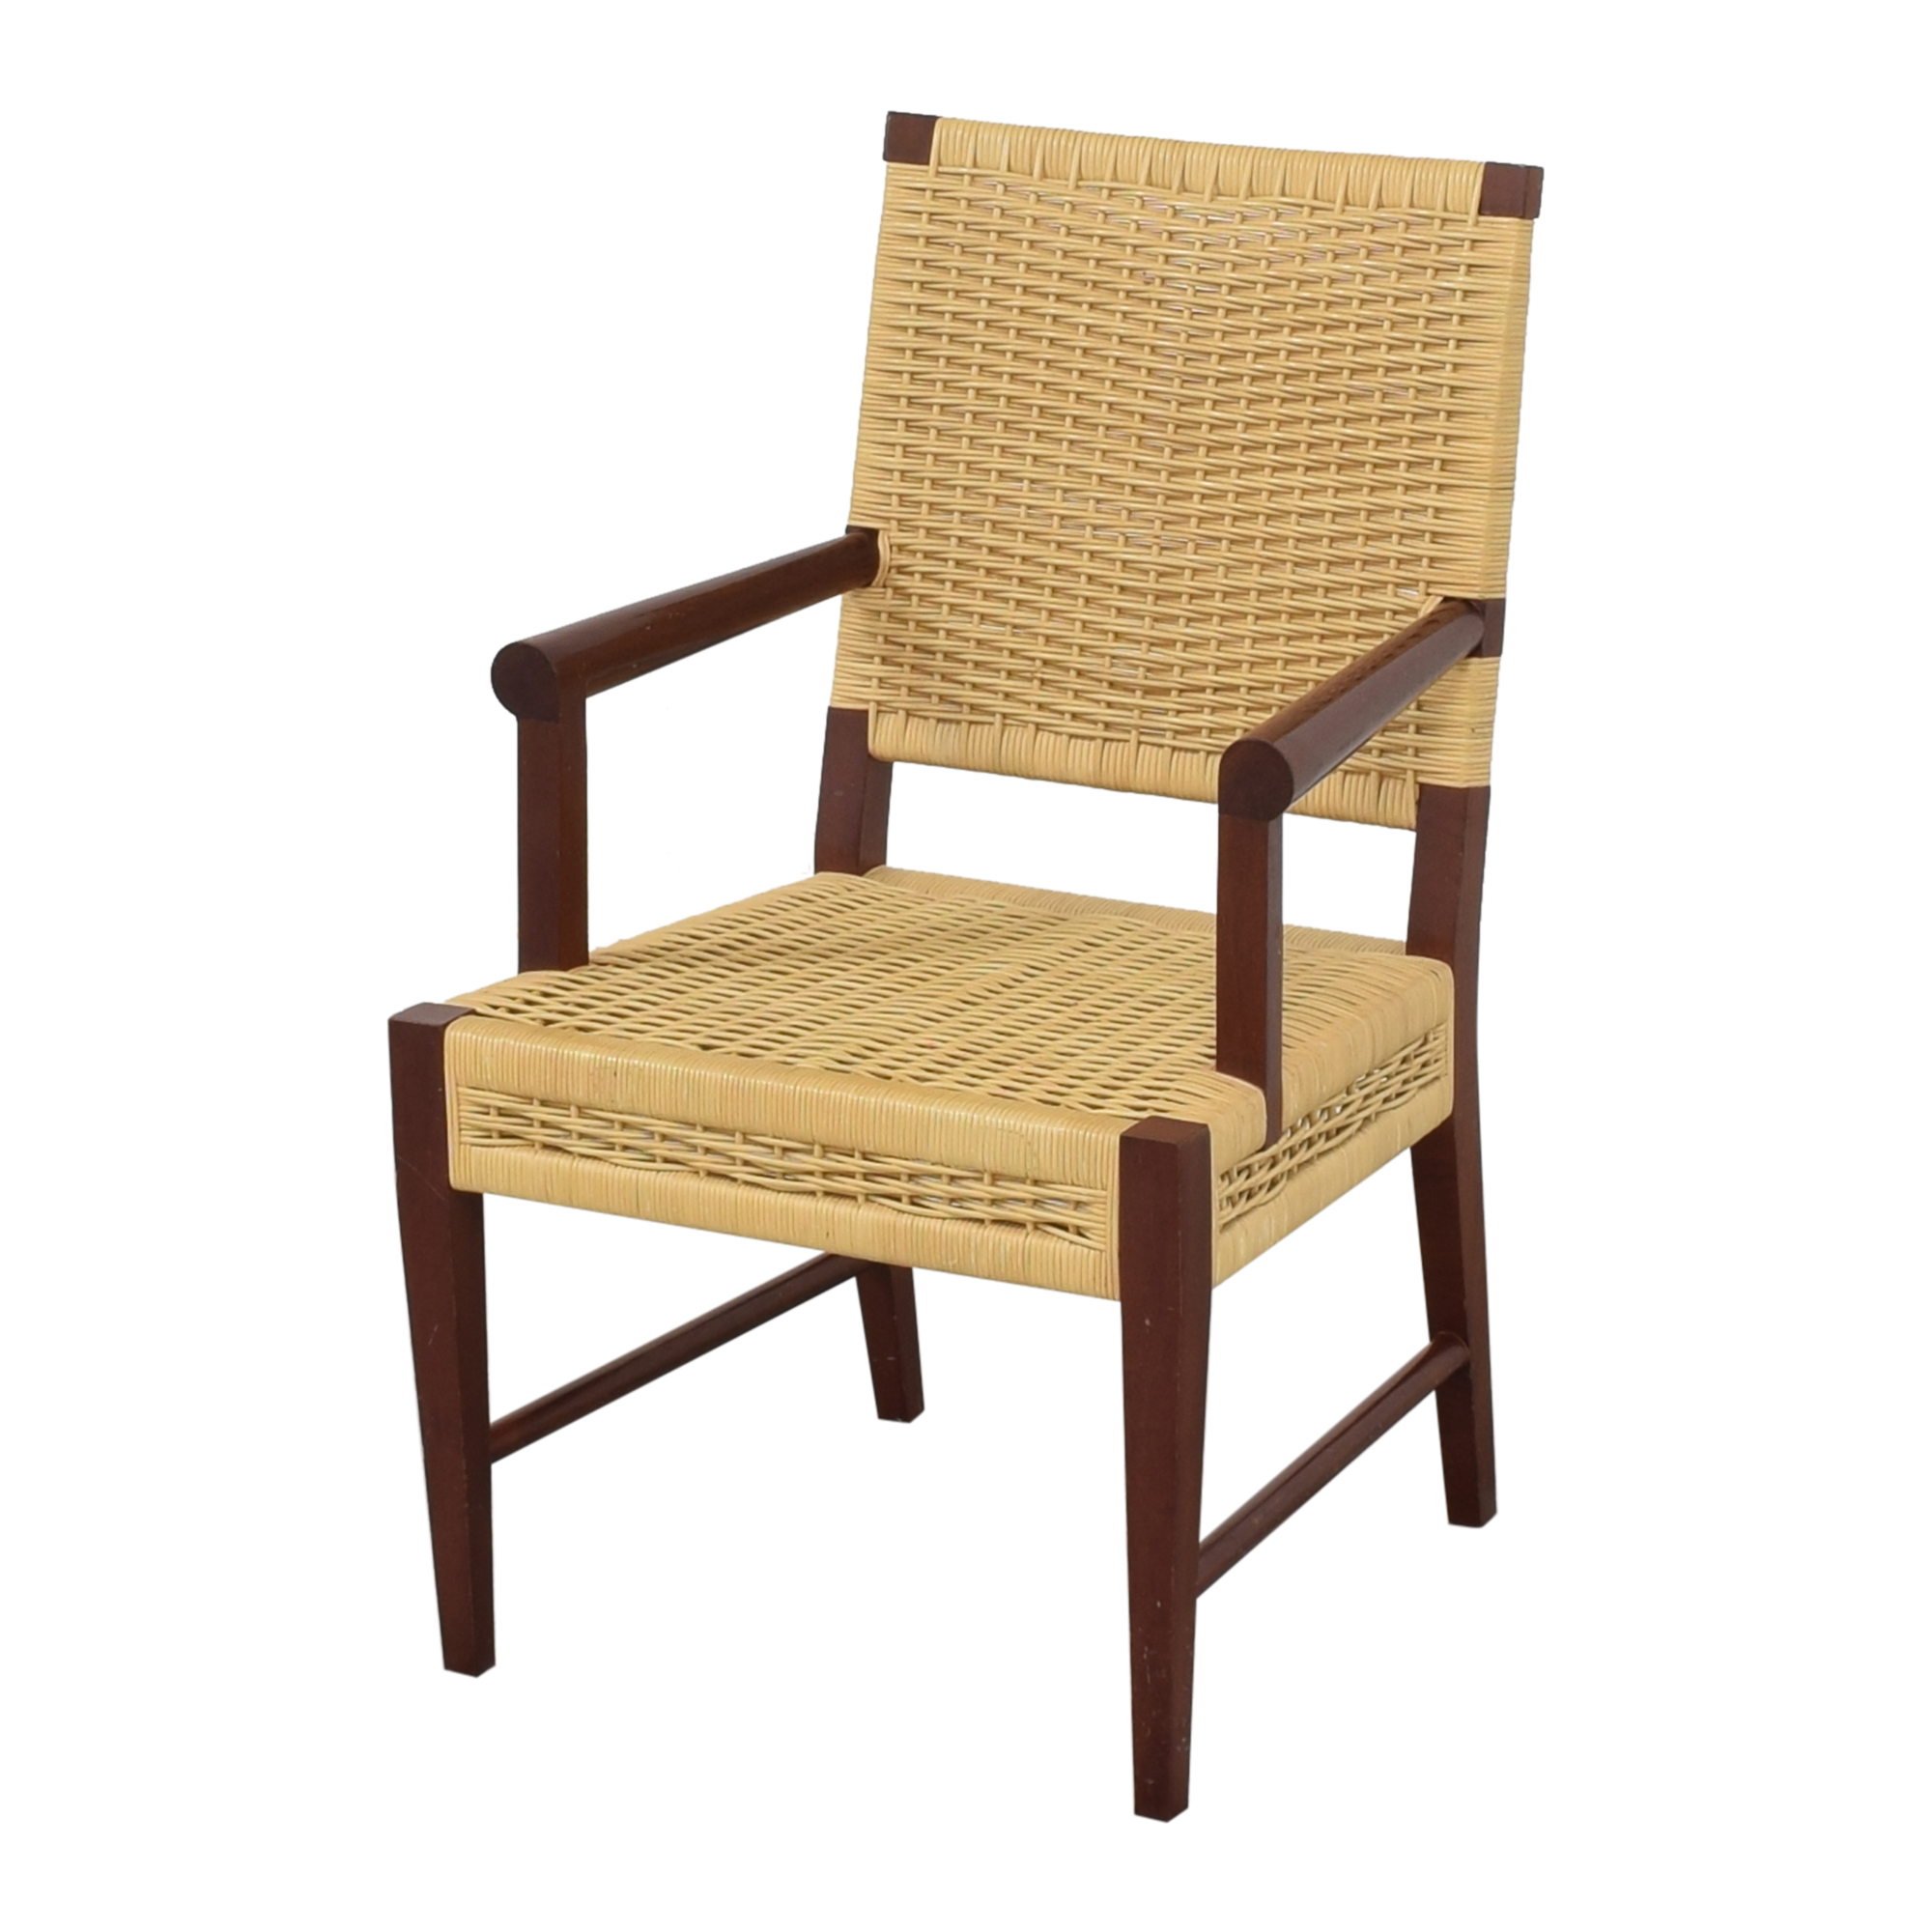 shop Donghia Donghia Dining Chairs in Merbau Wood with Raffia Weaving online